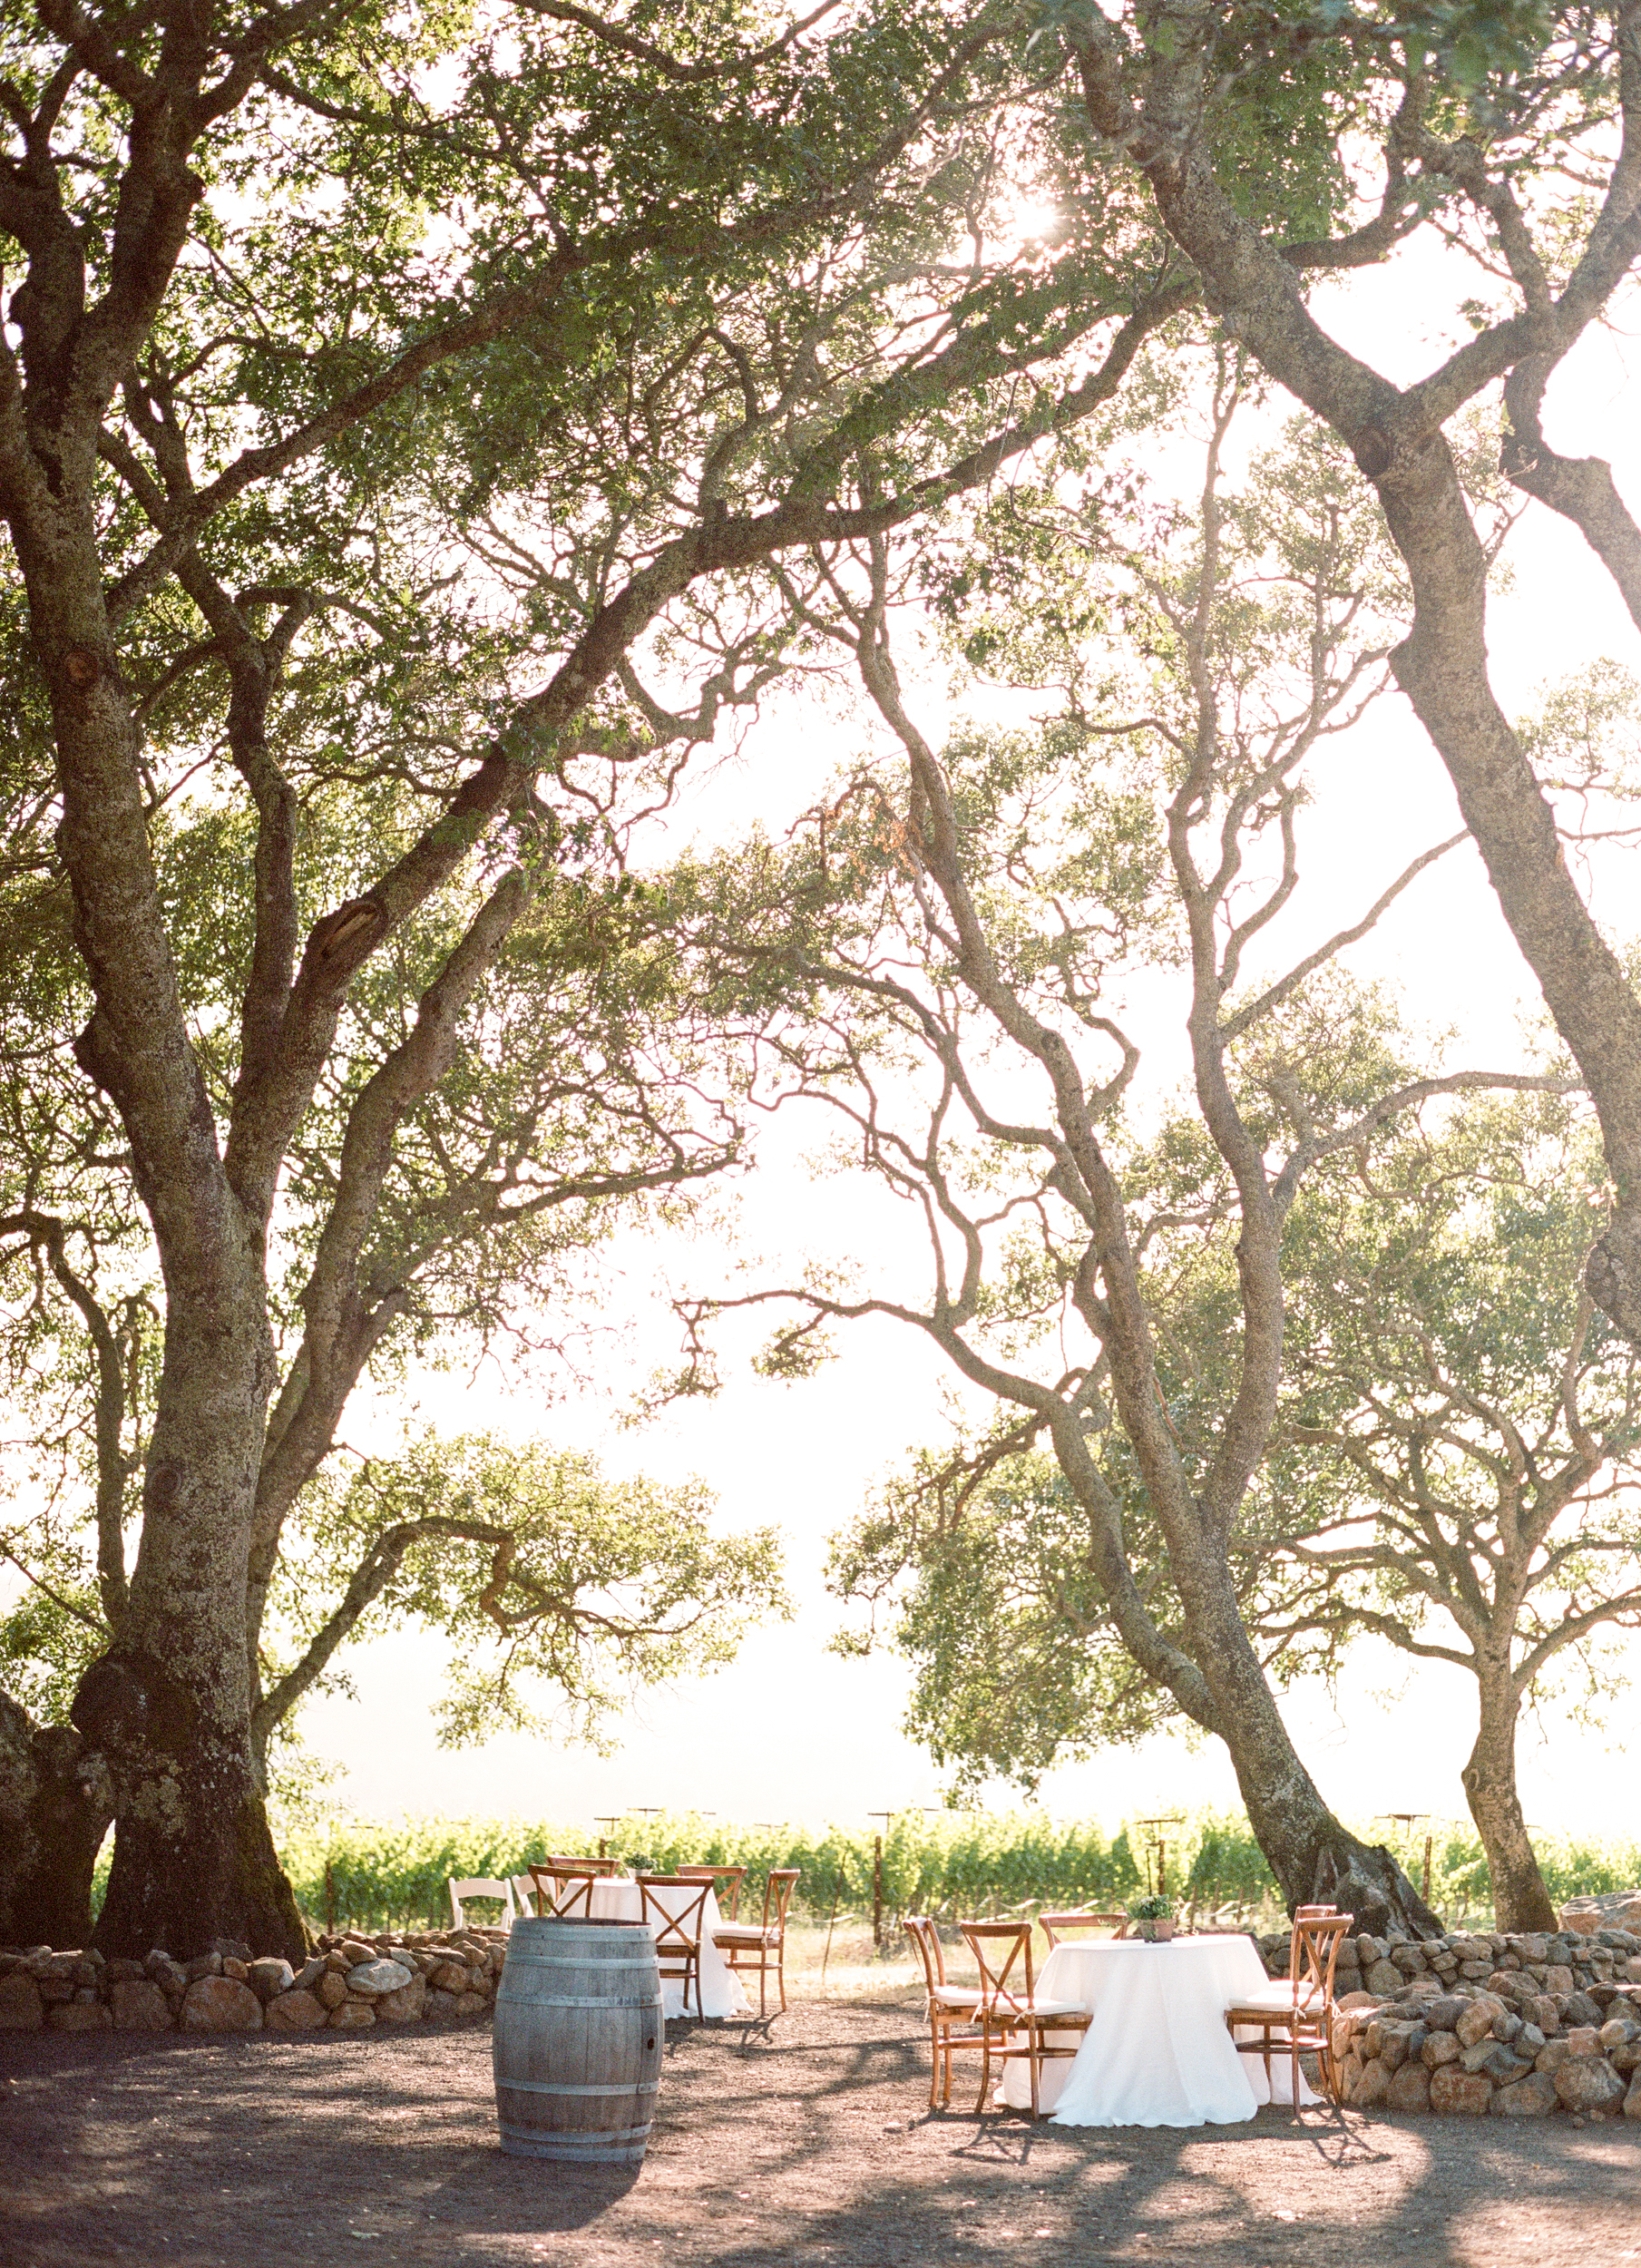 Sylvie-Gil-film-destination-photography-Kunde-winery-Napa-Valley-elegant-shabby-chic-reception-tables-oak-trees-vineyard